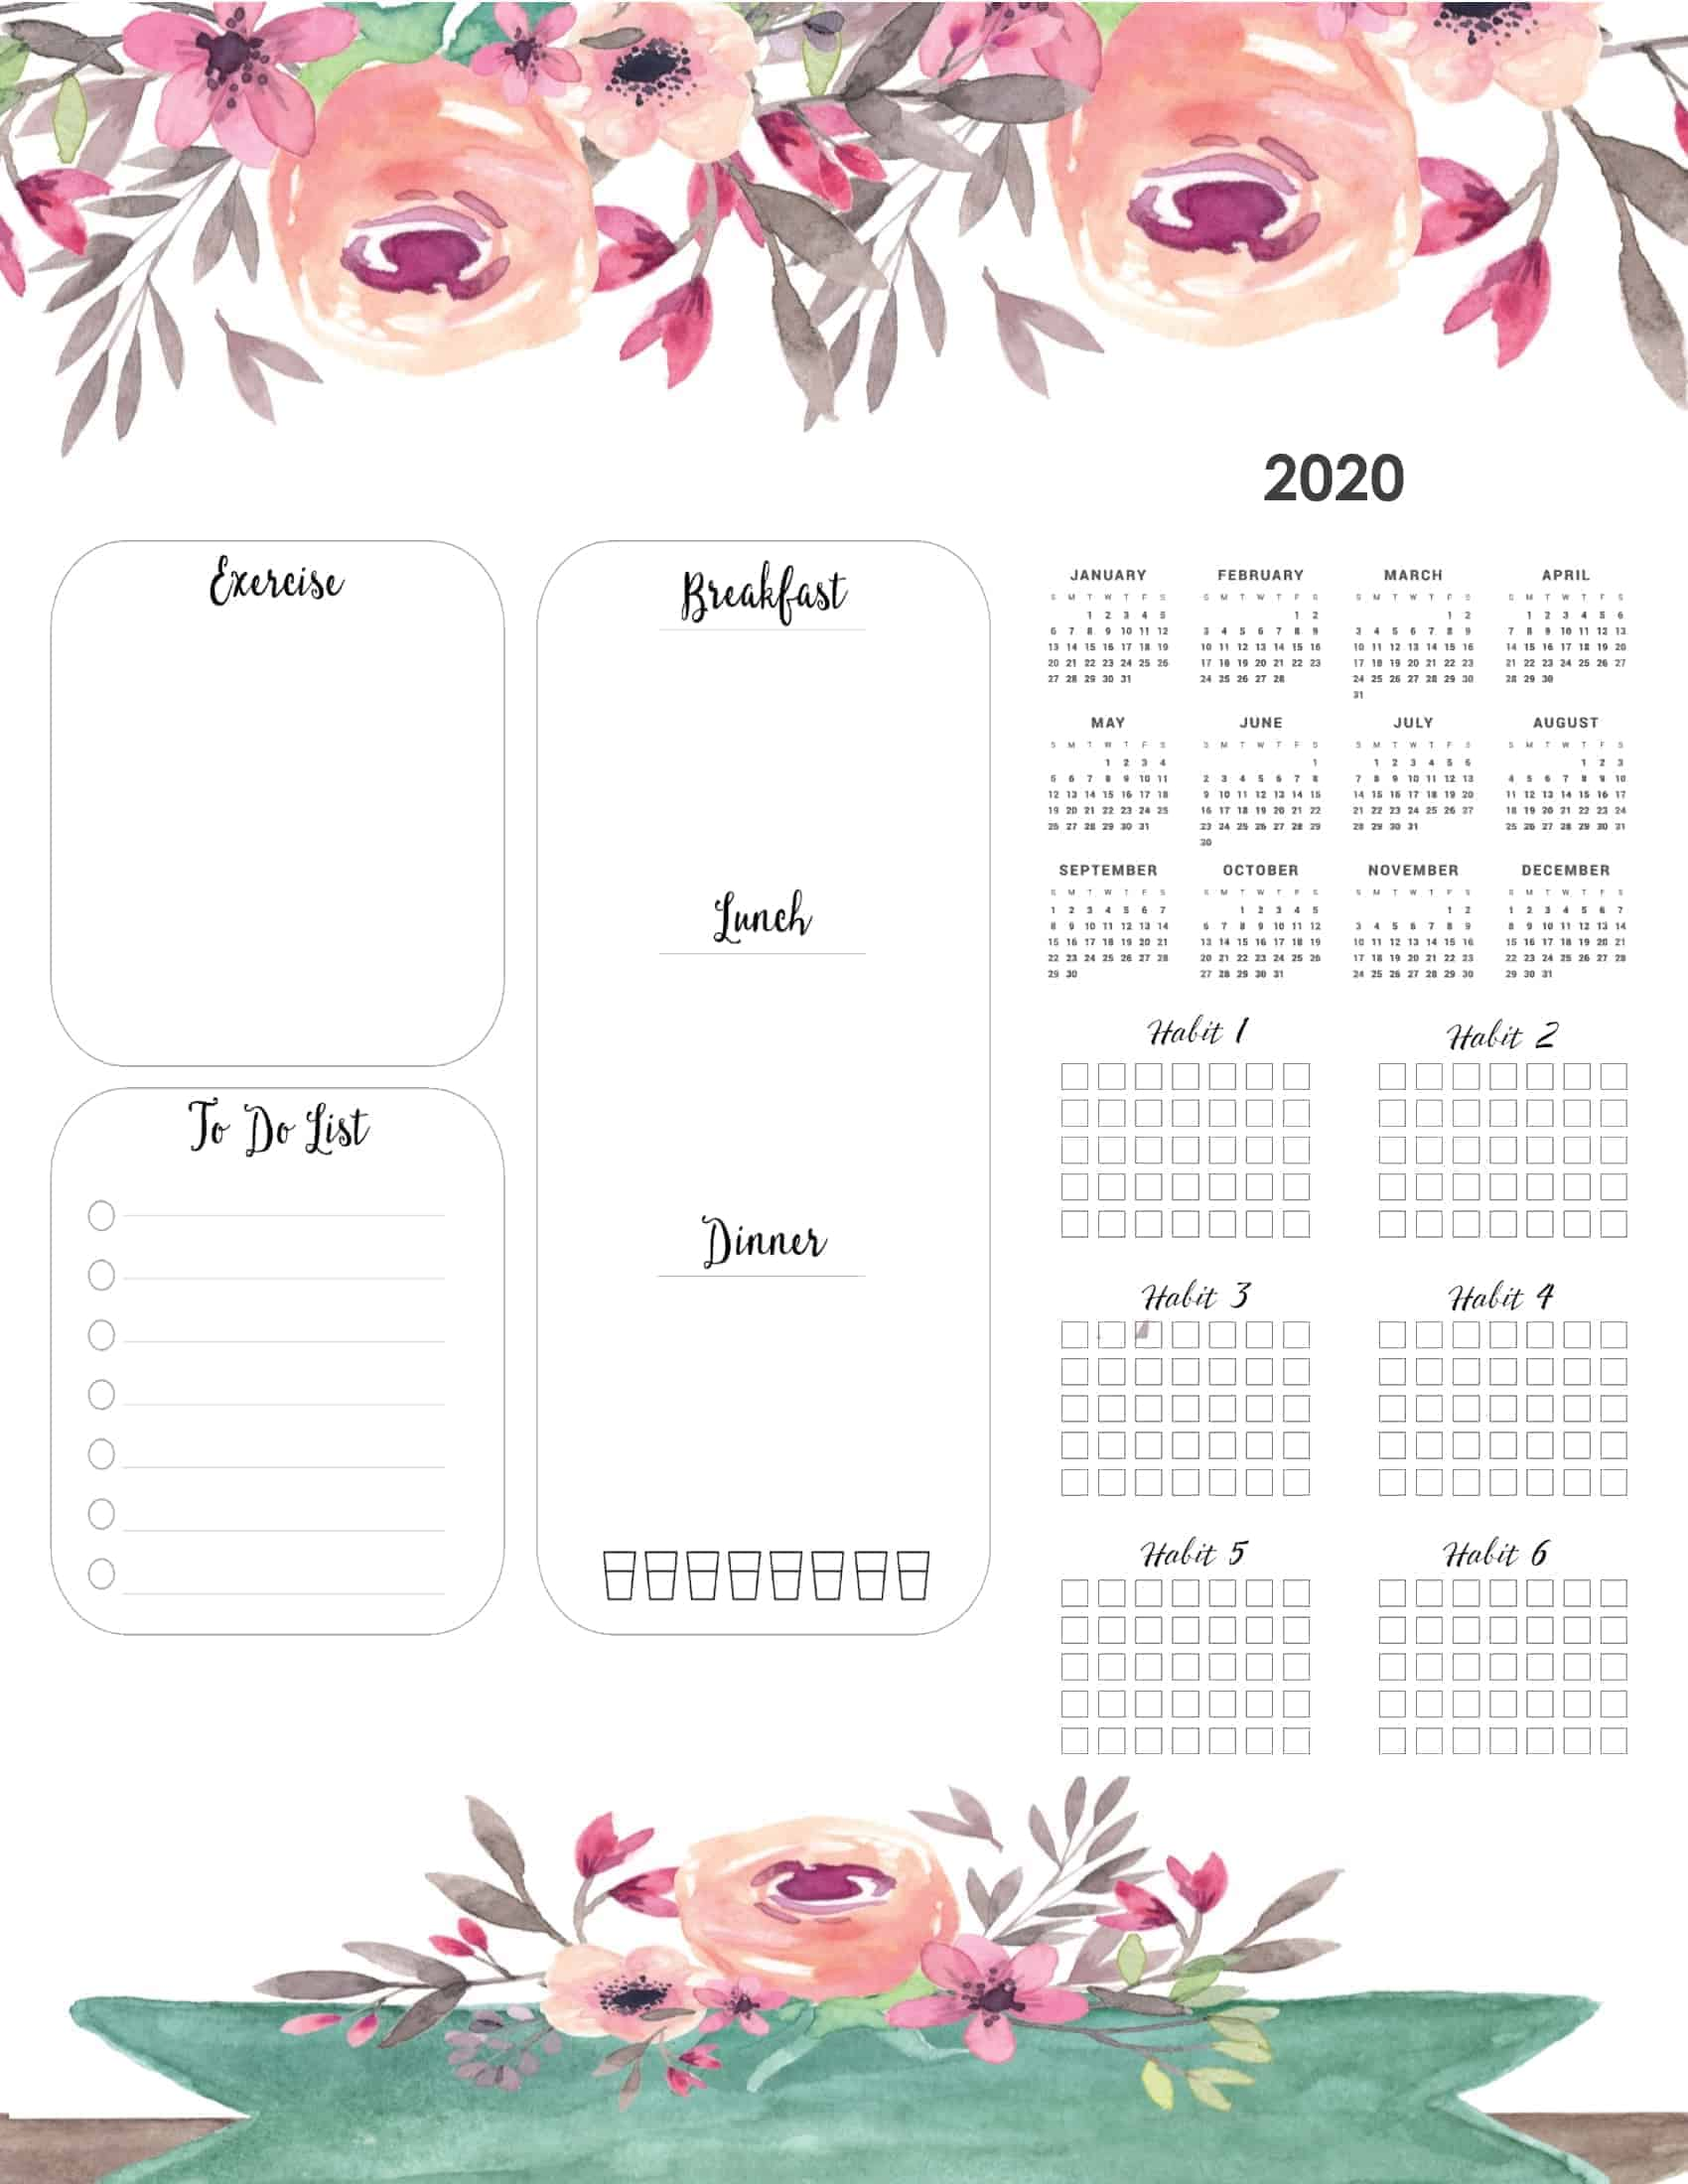 Free Printable 2020 Yearly Calendar At A Glance 101 Backgrounds